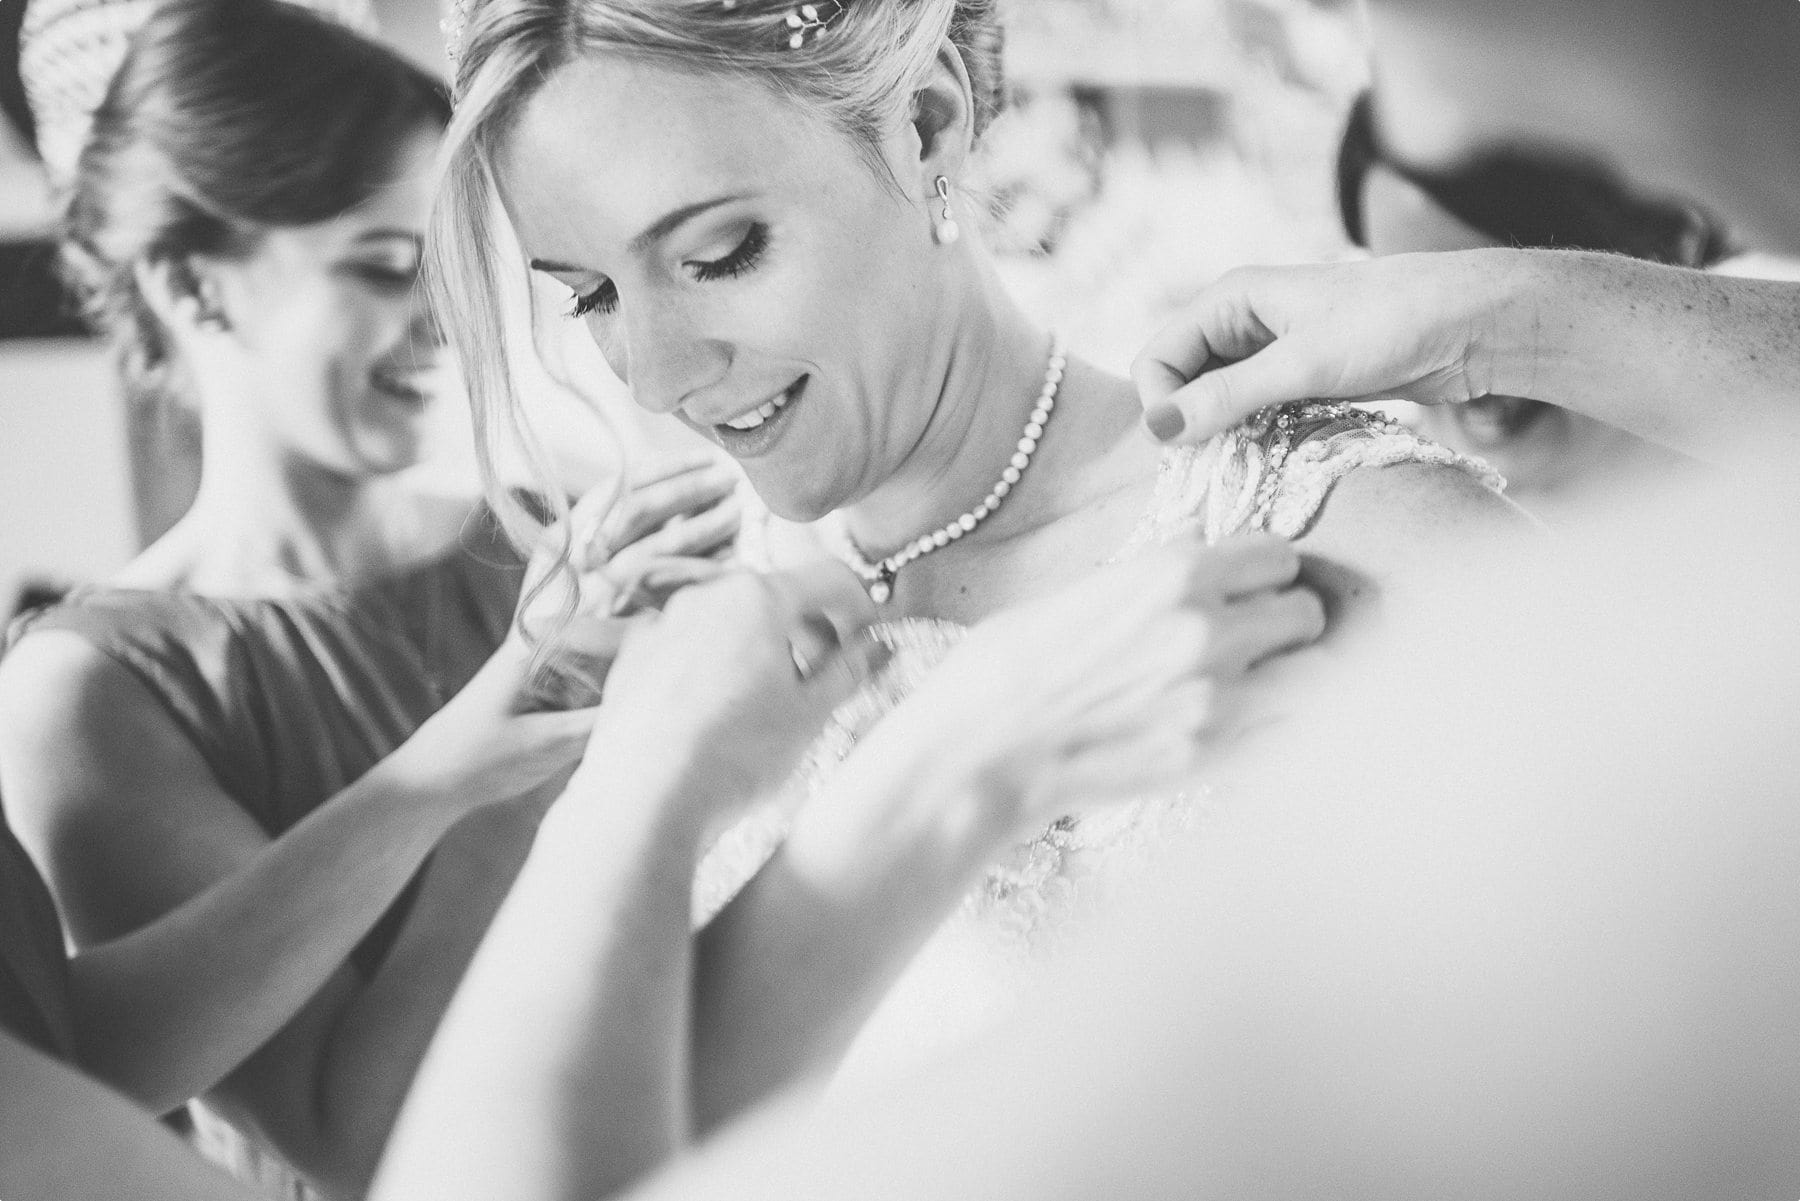 Bridesmaids helping the bride put on her pronovias wedding dress at Coworth Park Dower house